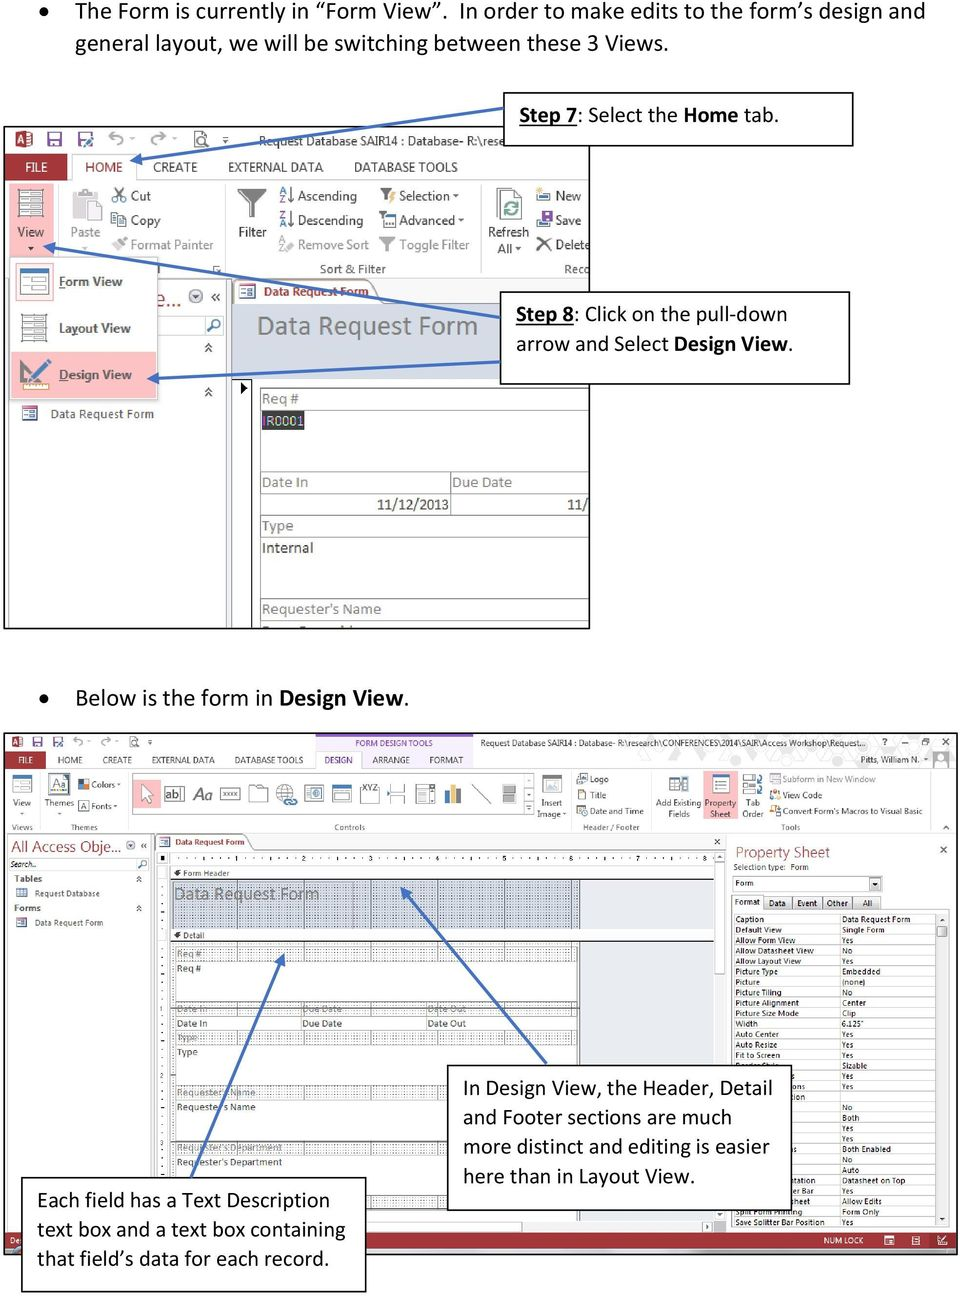 Step 7: Select the Home tab. Step 8: Click on the pull-down arrow and Select Design View. Below is the form in Design View.